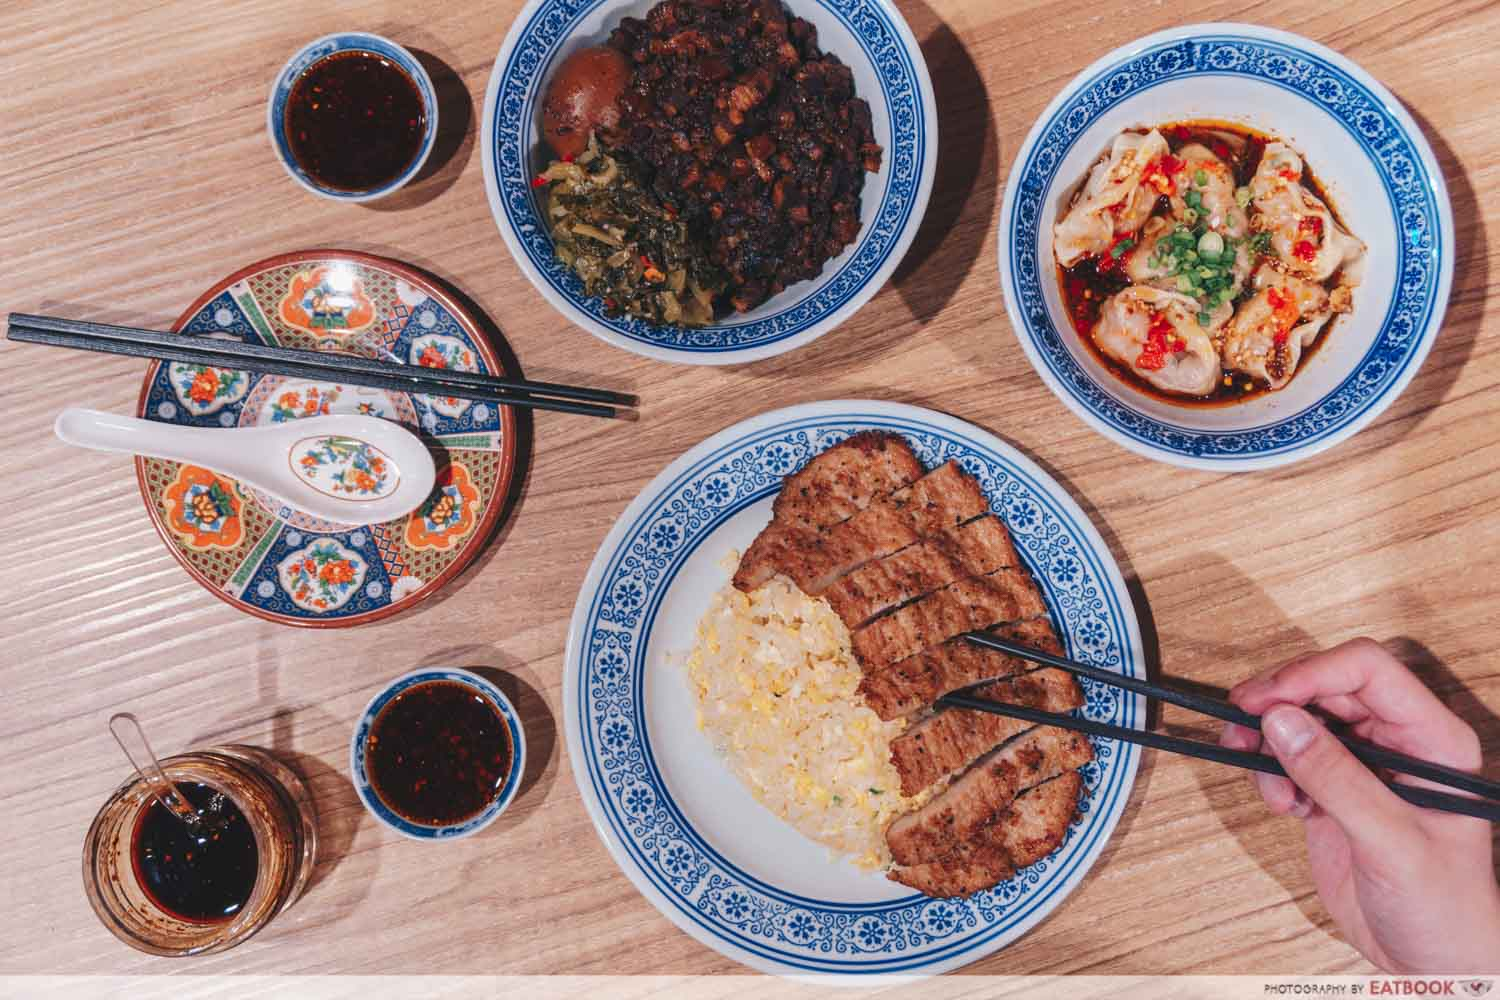 Feng Food Review: Fried Rice Pork Chop And Chilli Oil Wanton